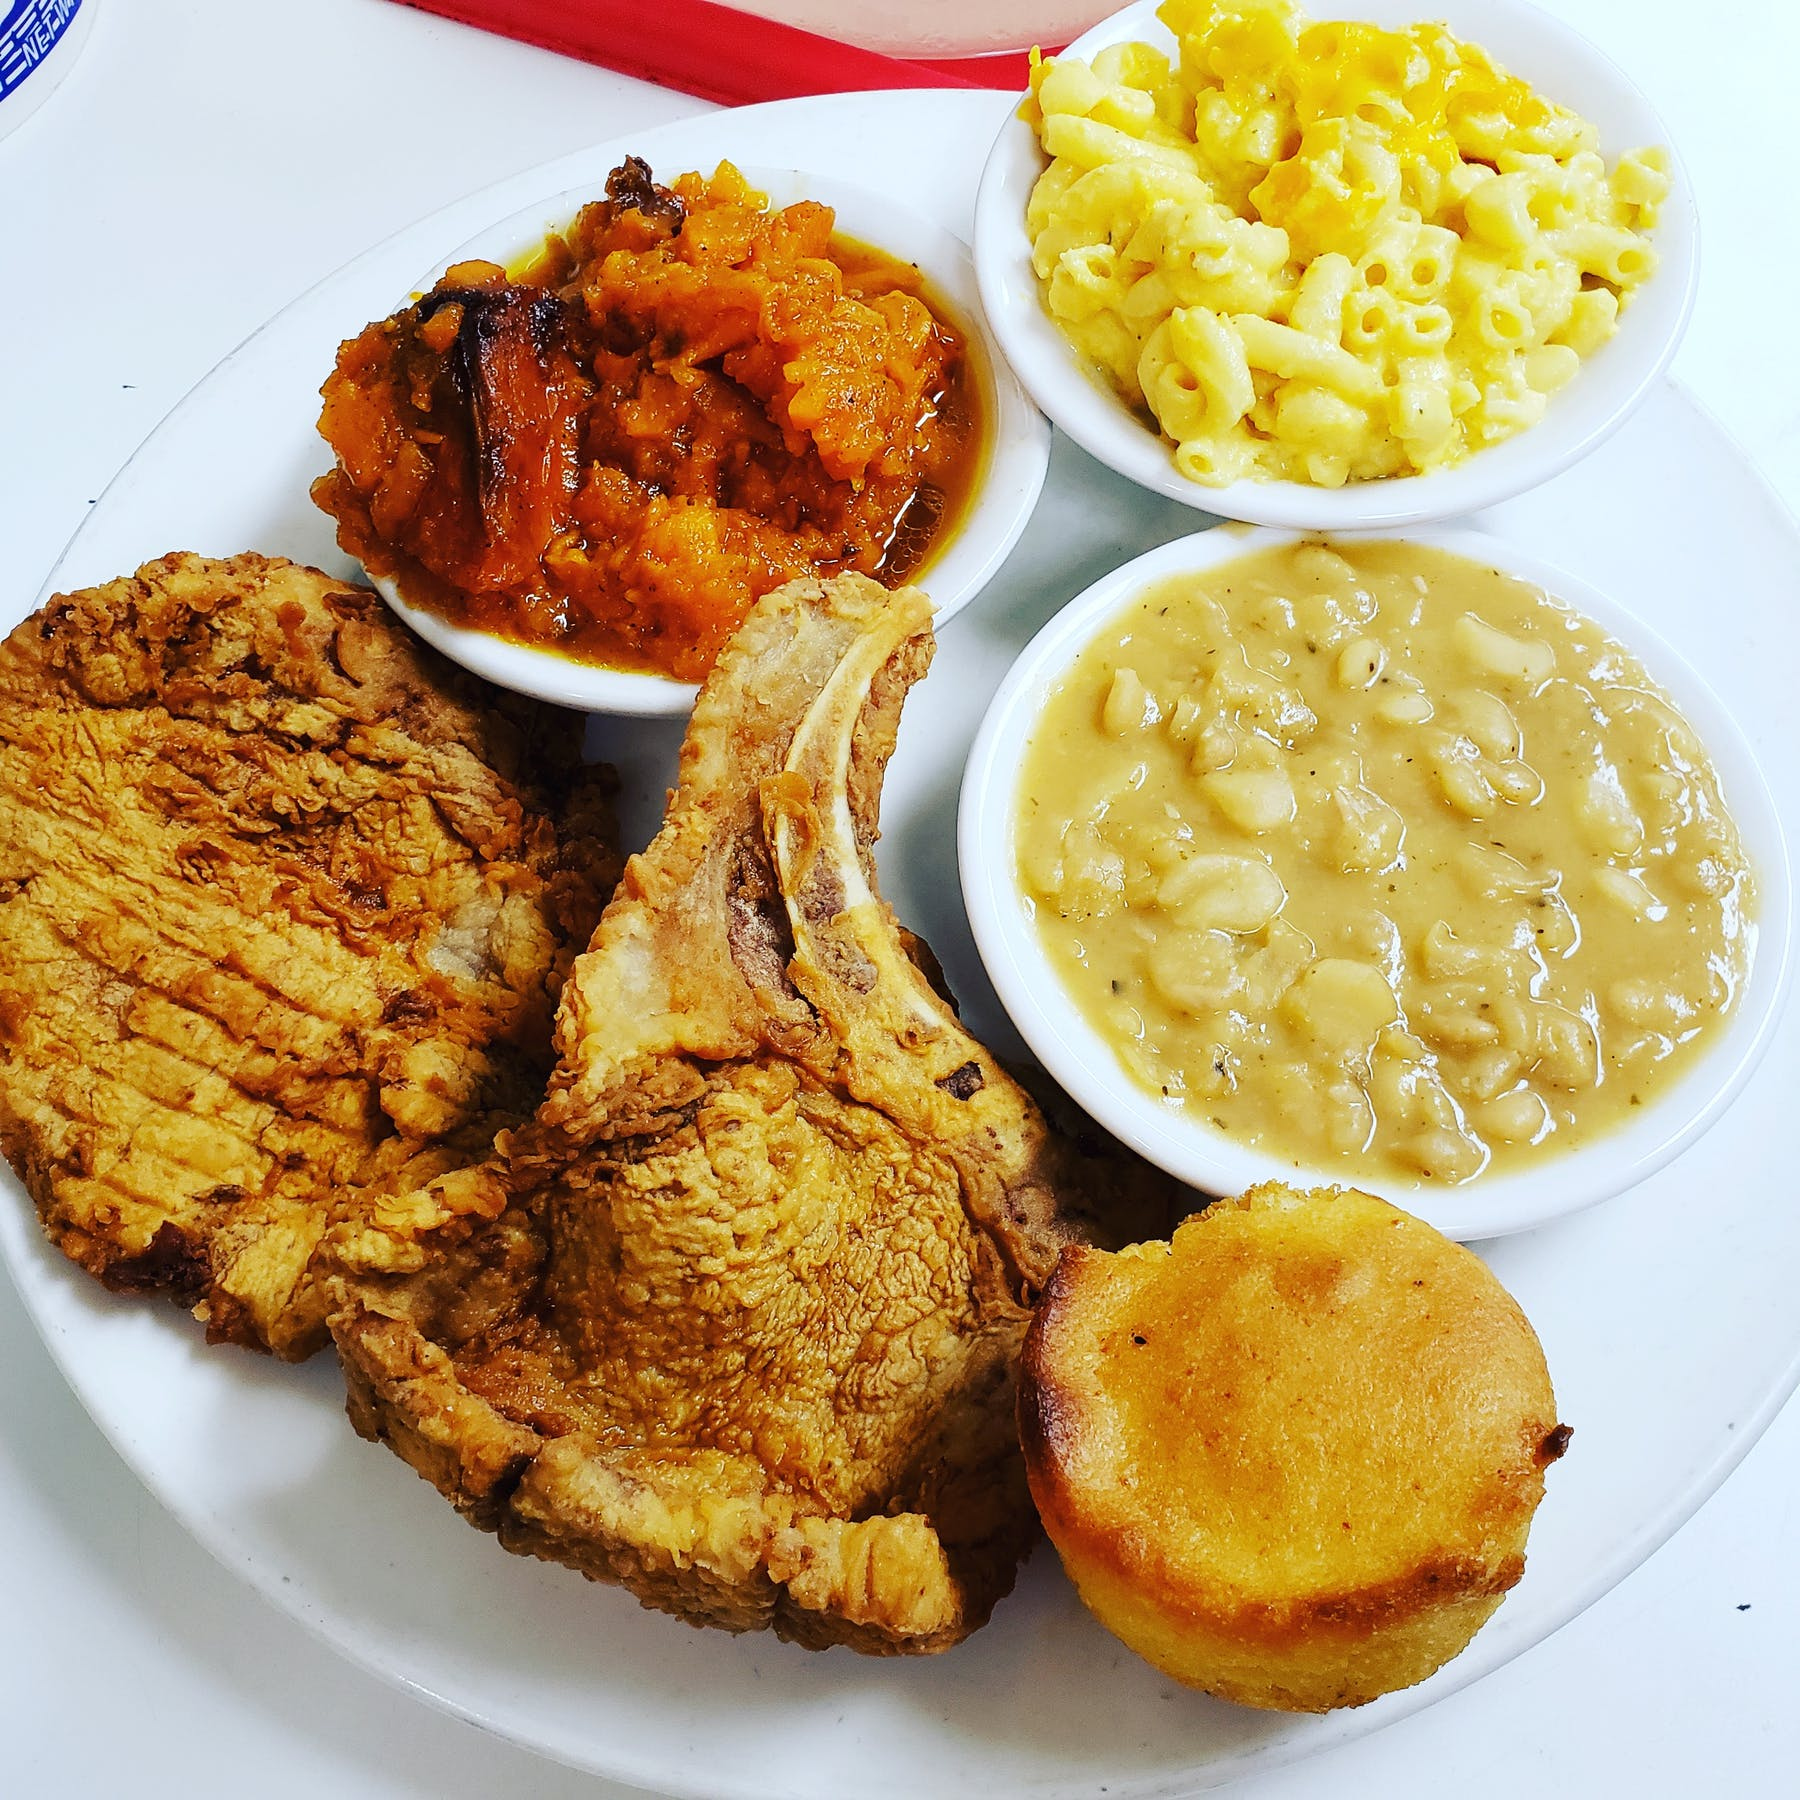 a white plate topped with fried chicken and bowls filled with food